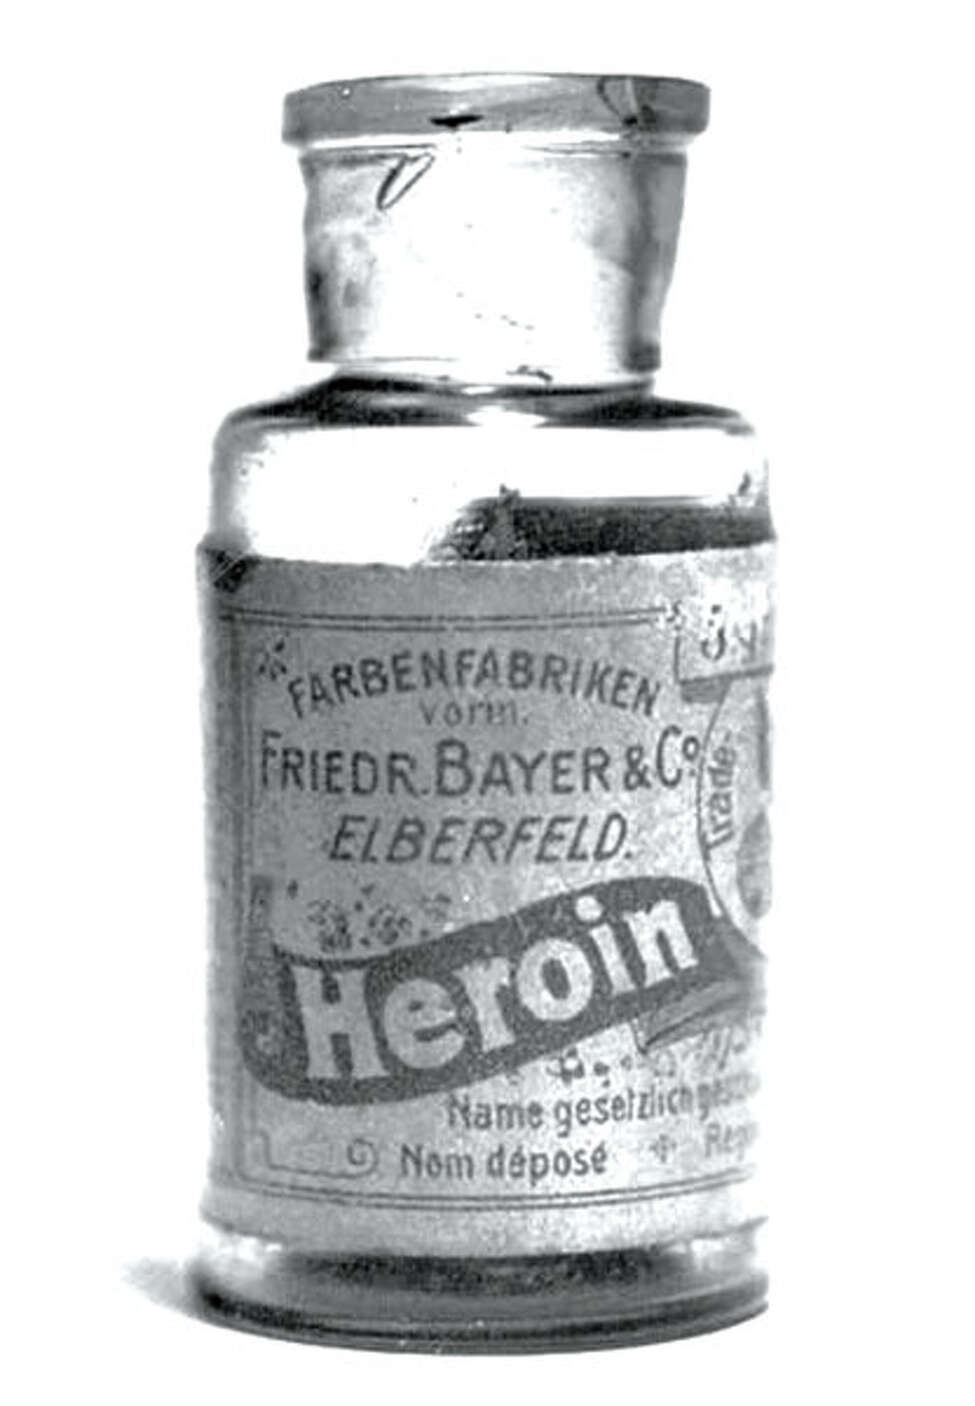 Drug History: One of the original bottles of Heroin produced by the Bayer Company.